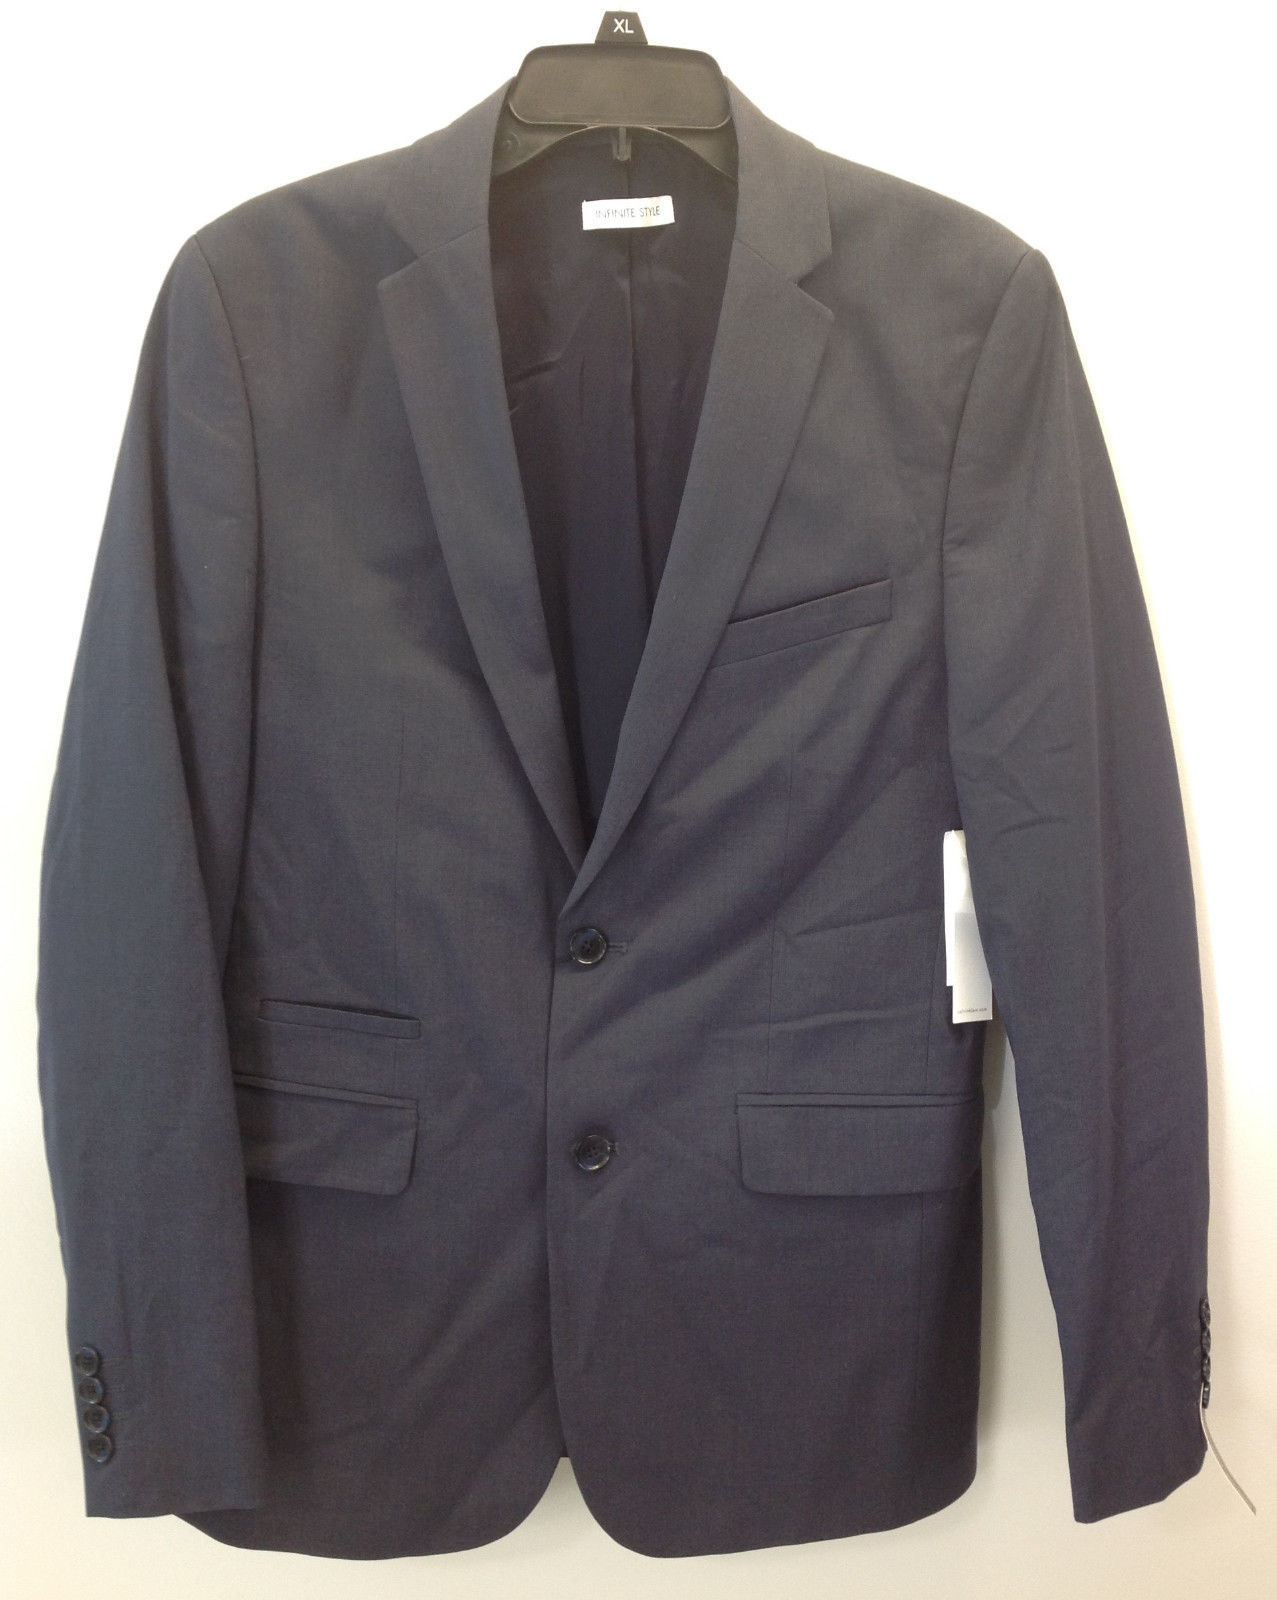 Primary image for Calvin Klein Men's Infinity Style Jacket,Navy,  Size M, Regular, MSRP $198